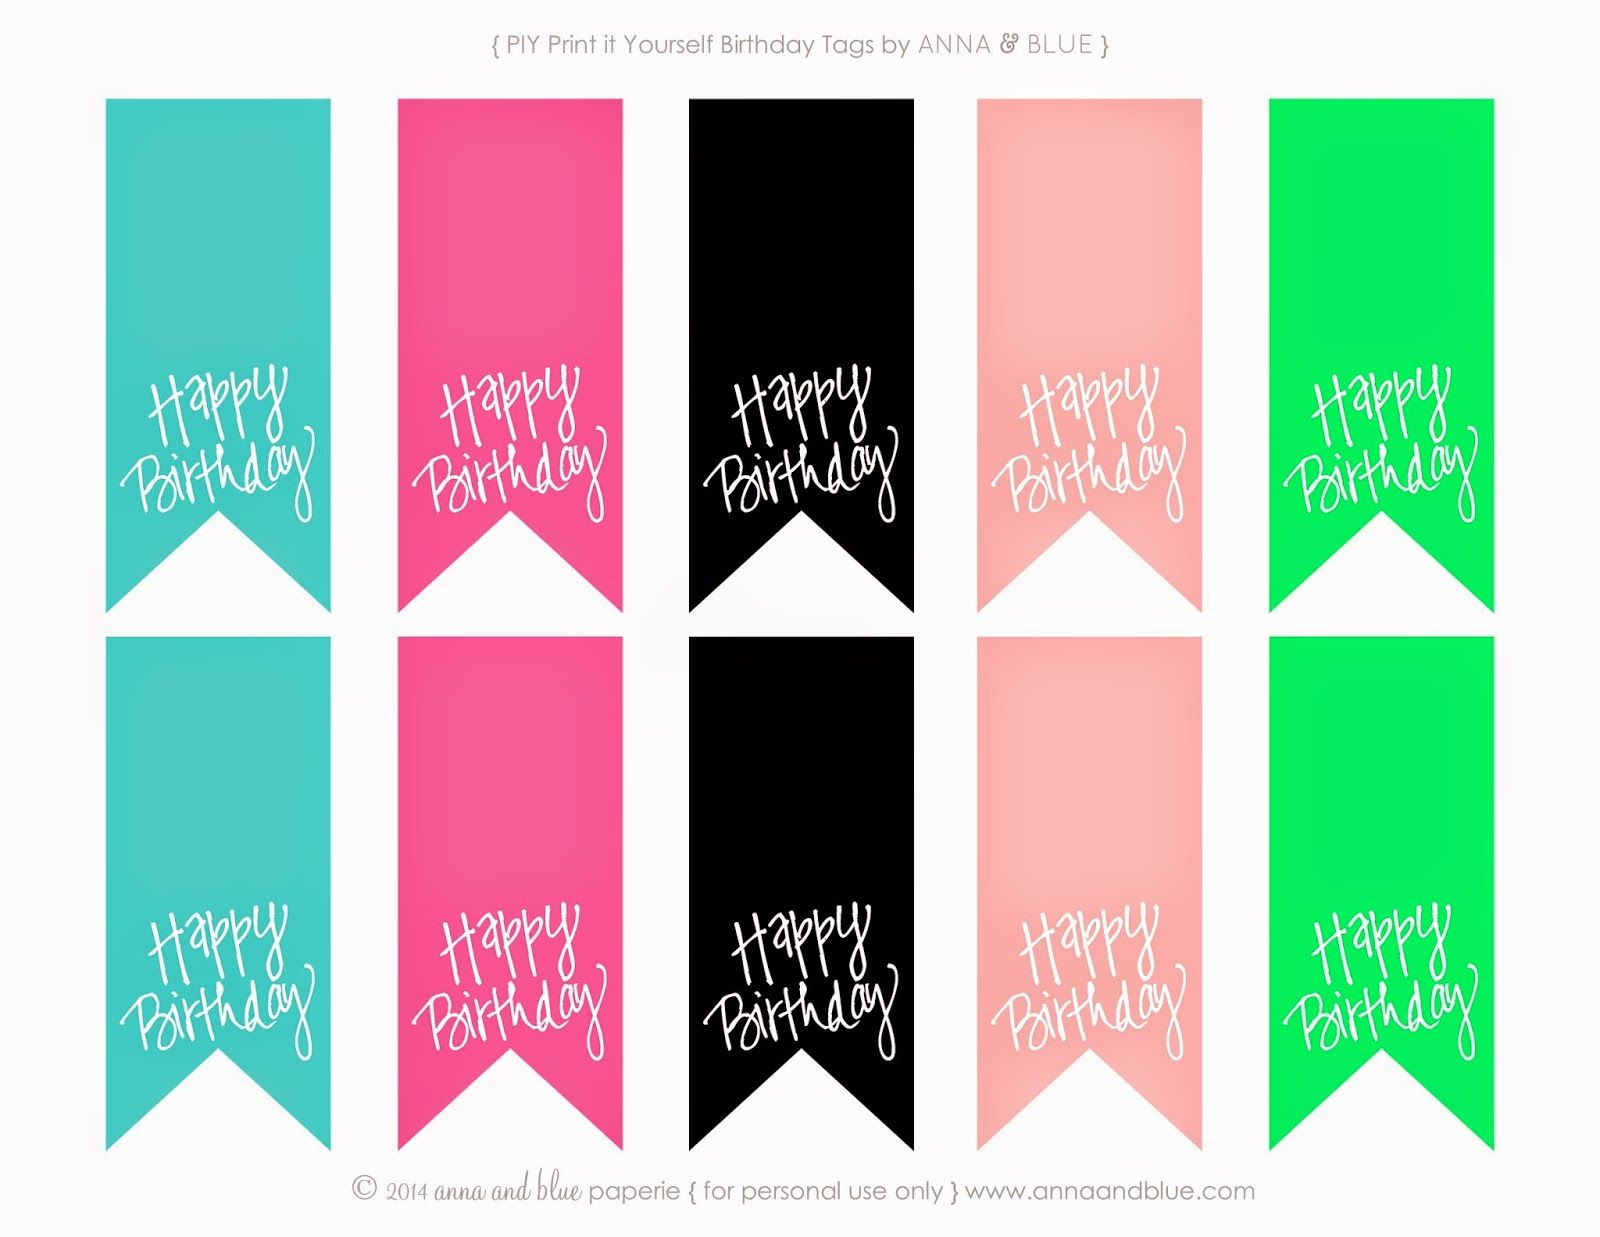 Printable happy birthday gift tags gifts trendy tags anna and blue paperie free printable happy birthday gift tags in 5 colors negle Gallery